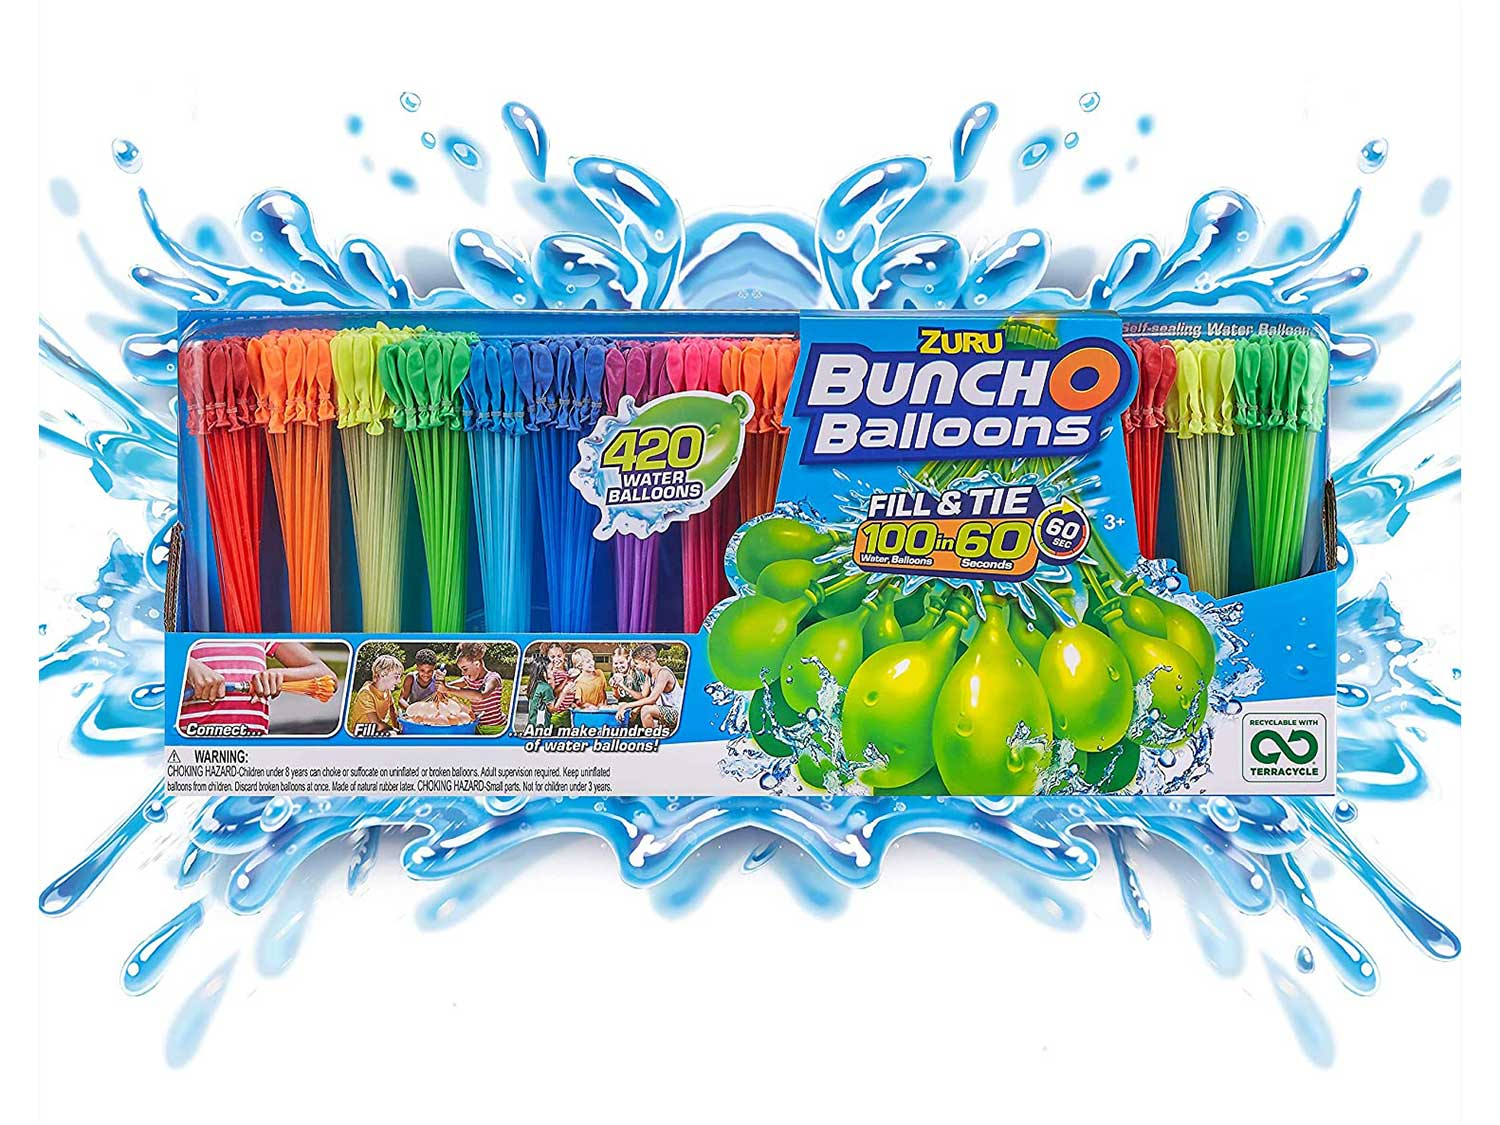 Bunch O Balloons - 420 Rapid-Fill Water Balloons (12 Pack), Multi-Colored